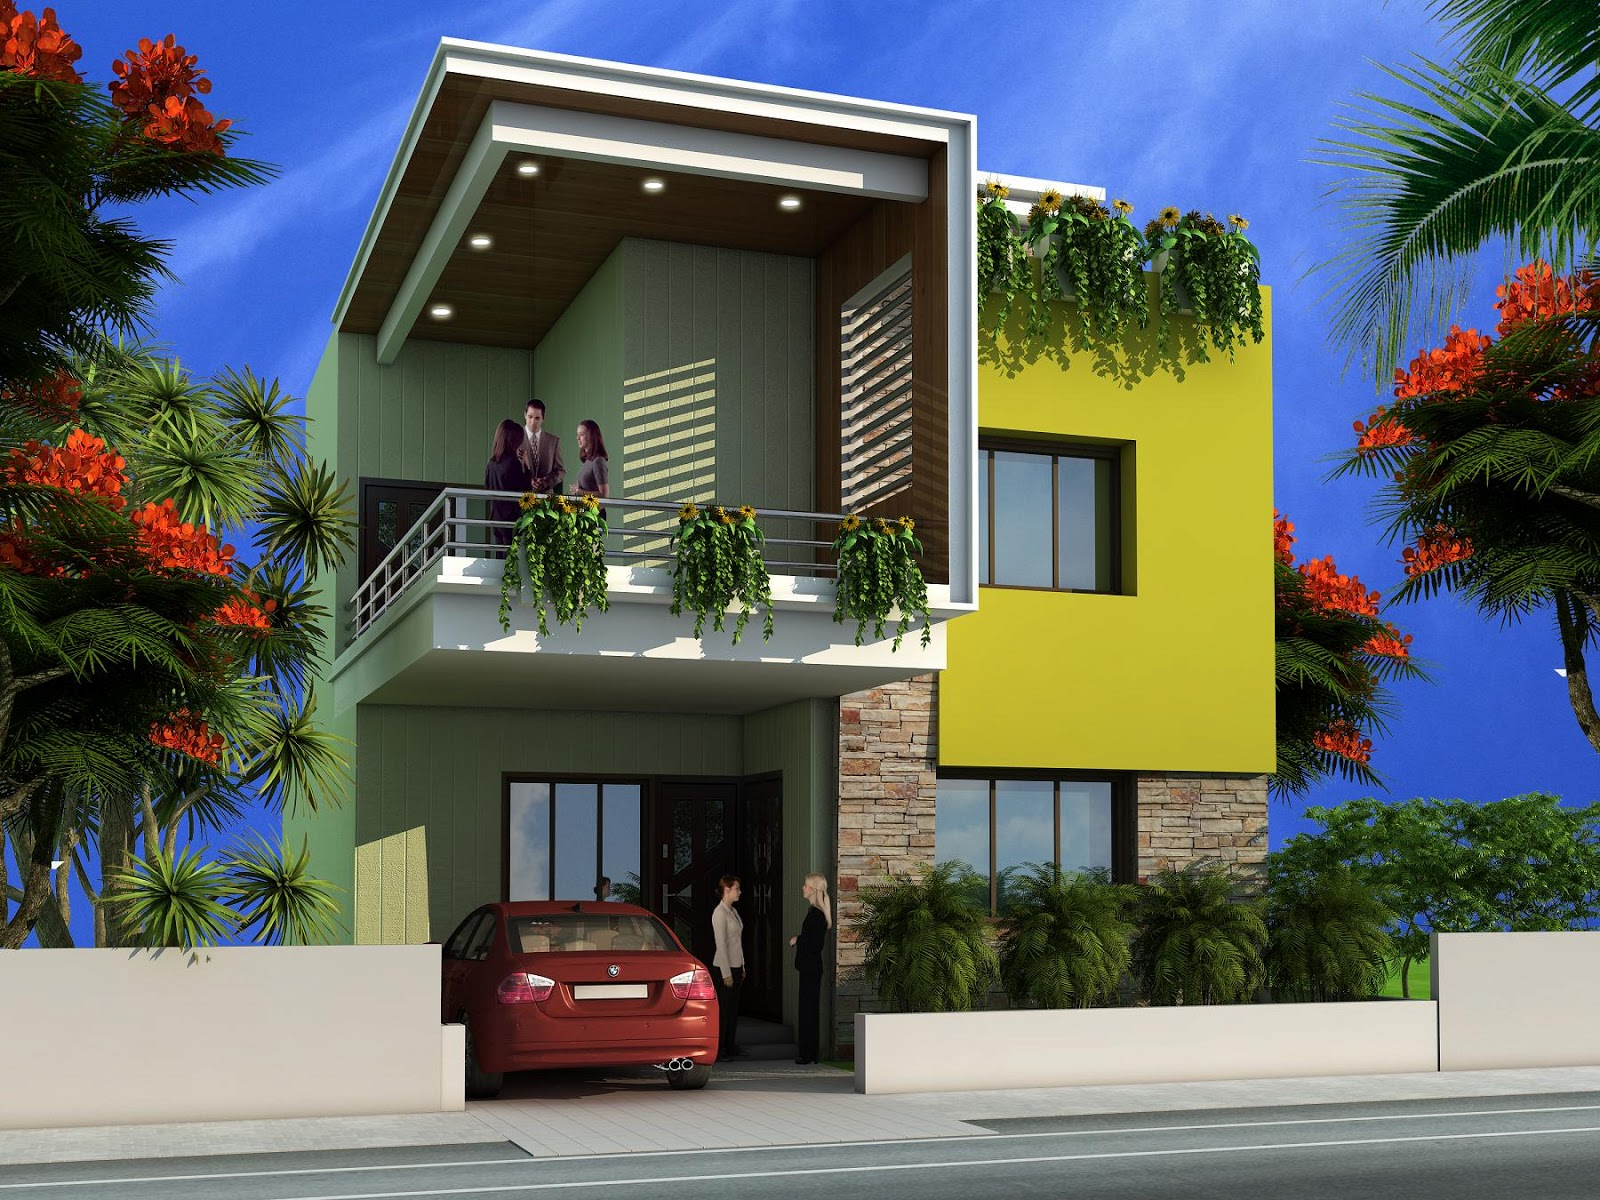 Duplex House Design, Architectural House Plans